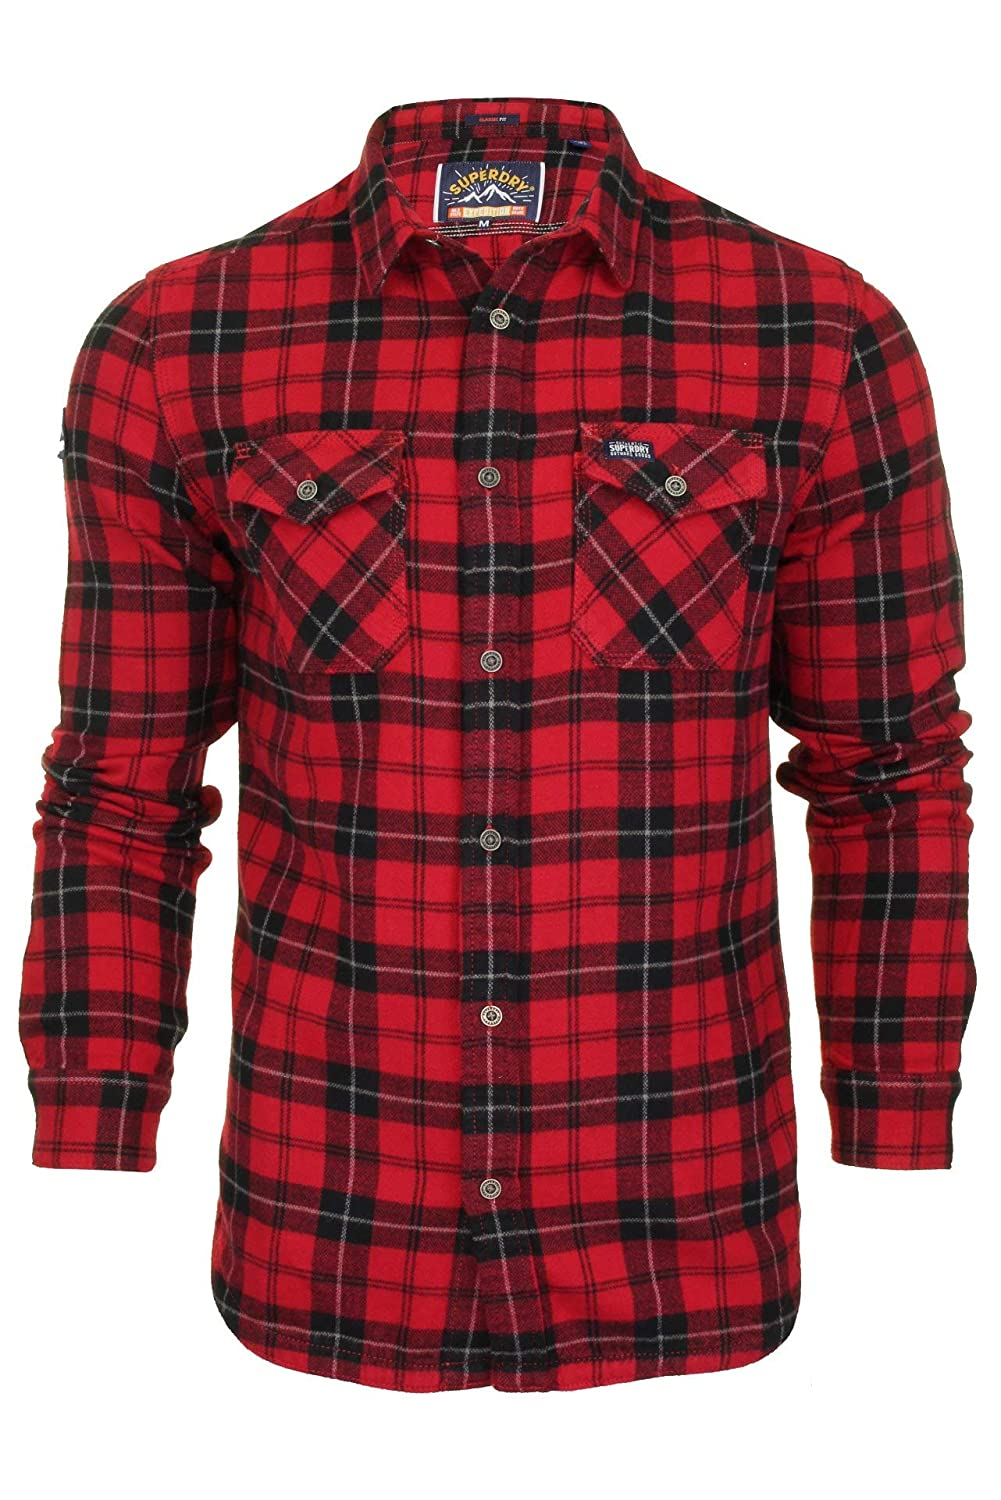 Superdry Mens Rookie Ridge Checked Shirt Red in Size Medium ...